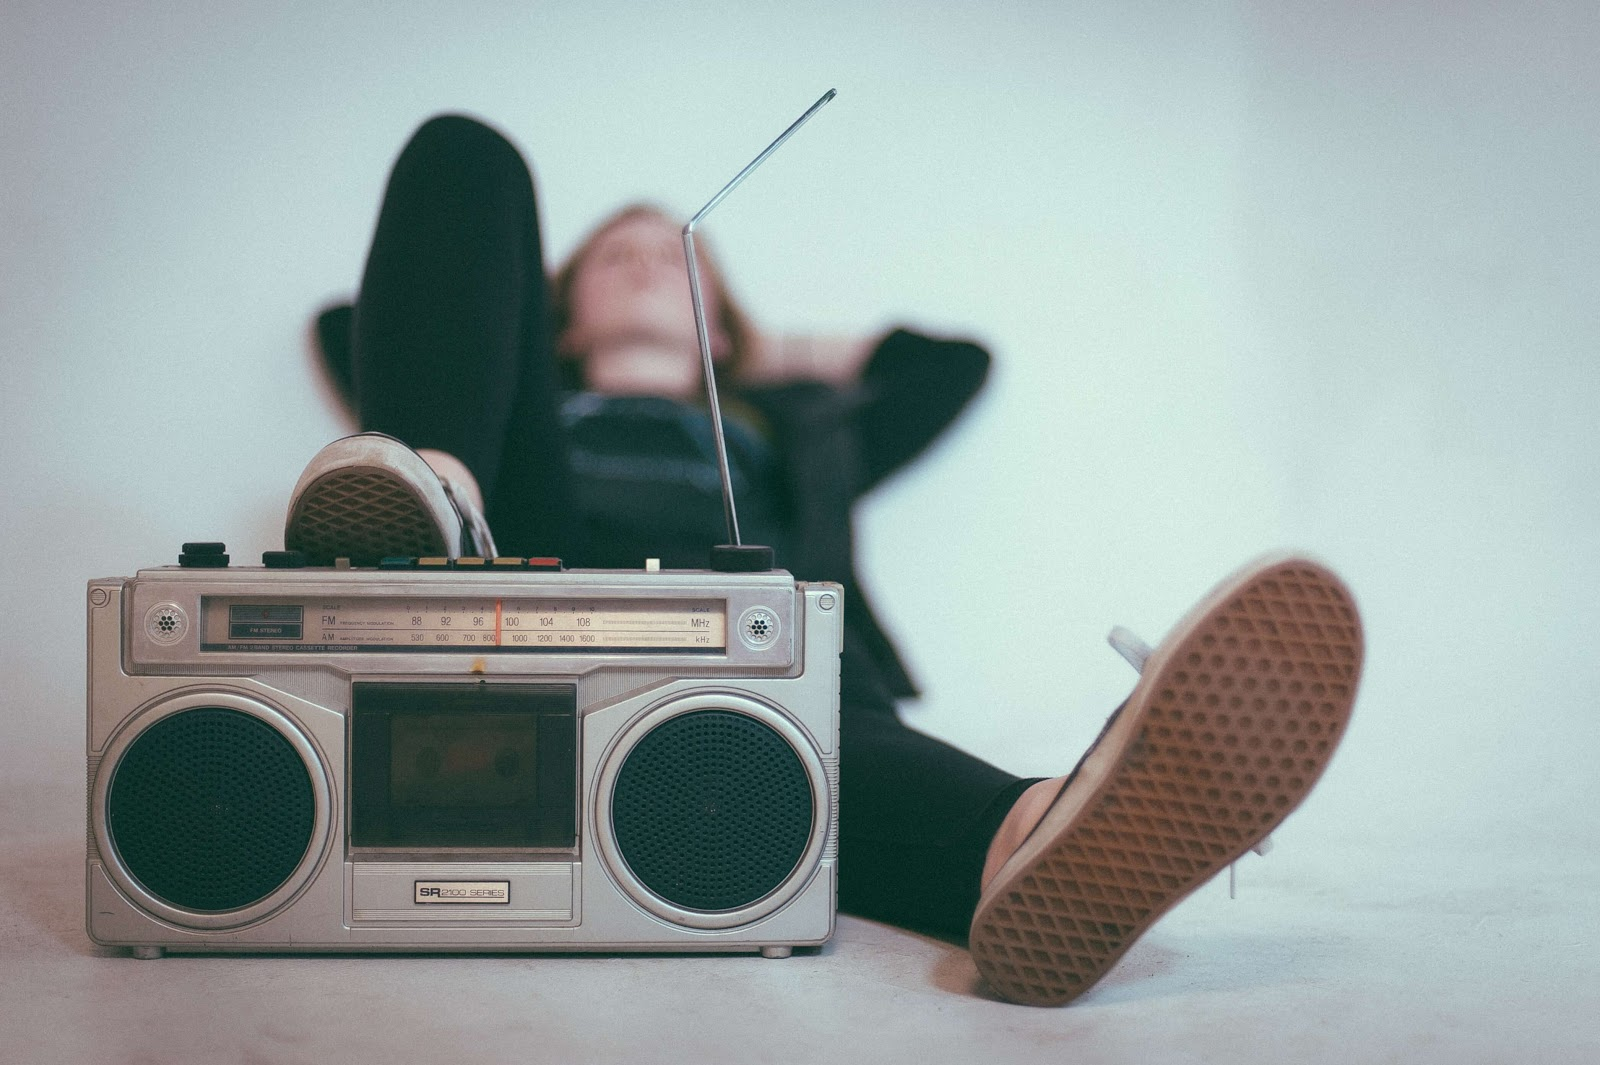 A person lying down with their foot rested on a portable radio